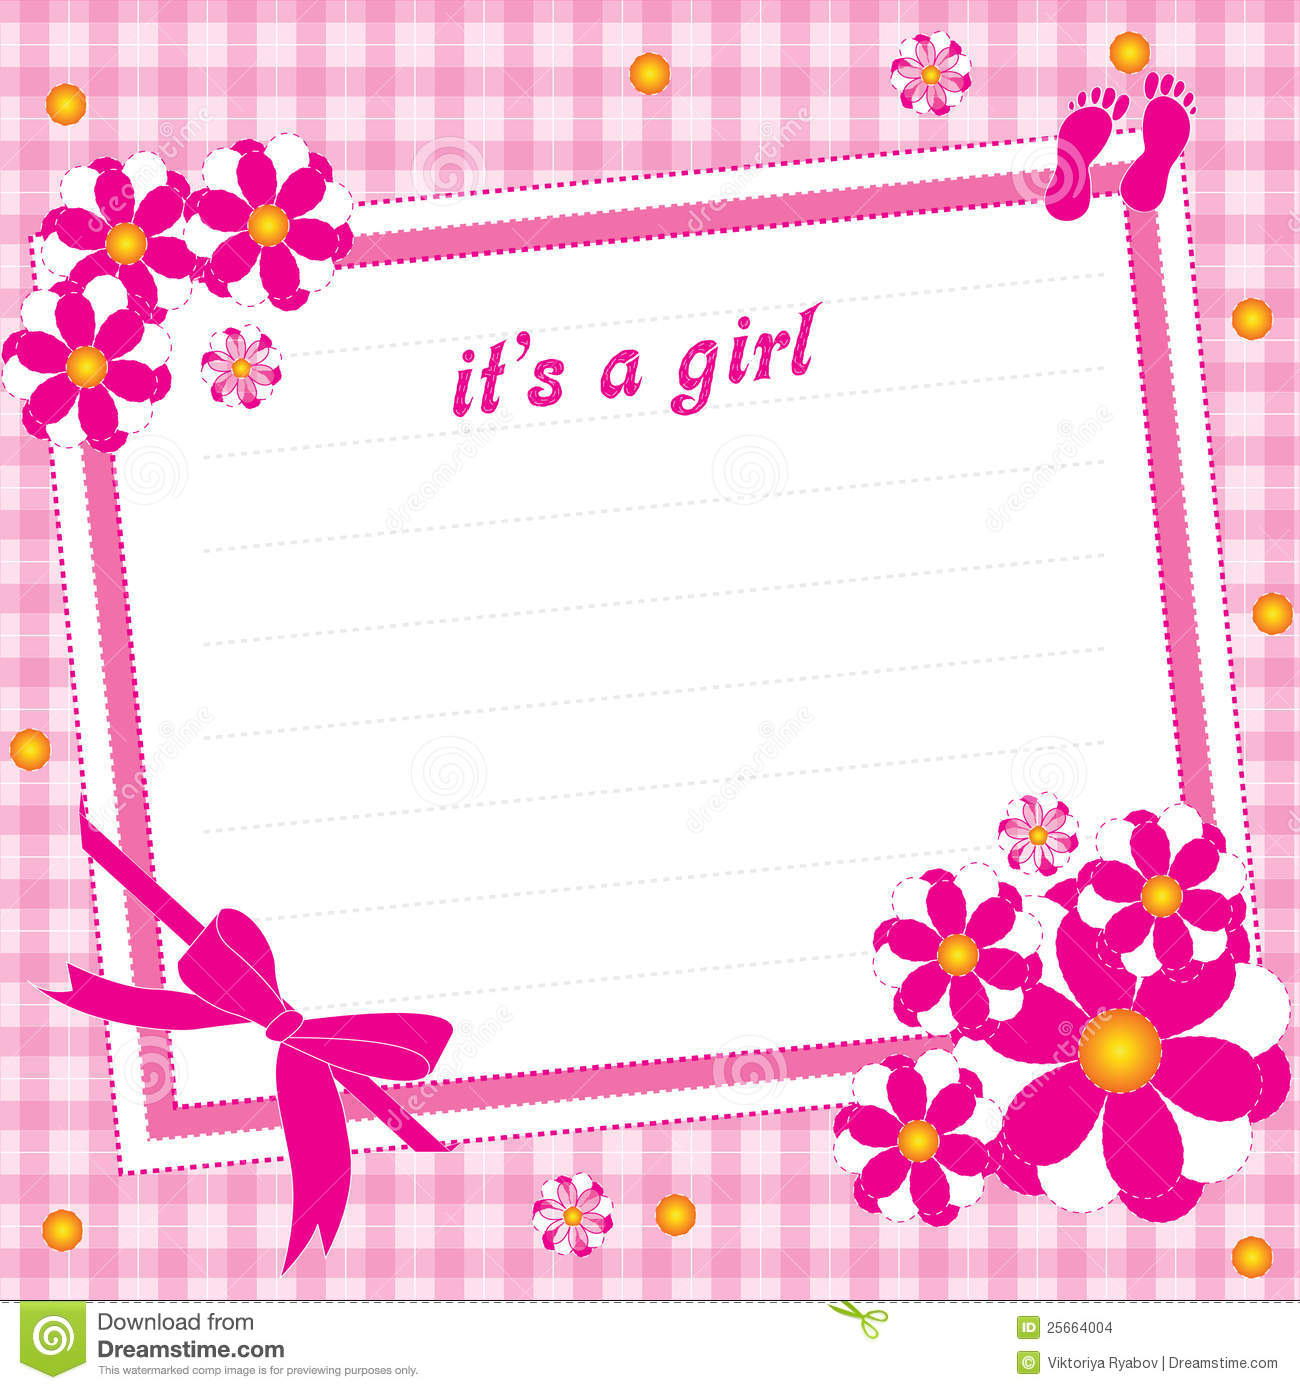 Illustration greeting card for girl on a pink background.